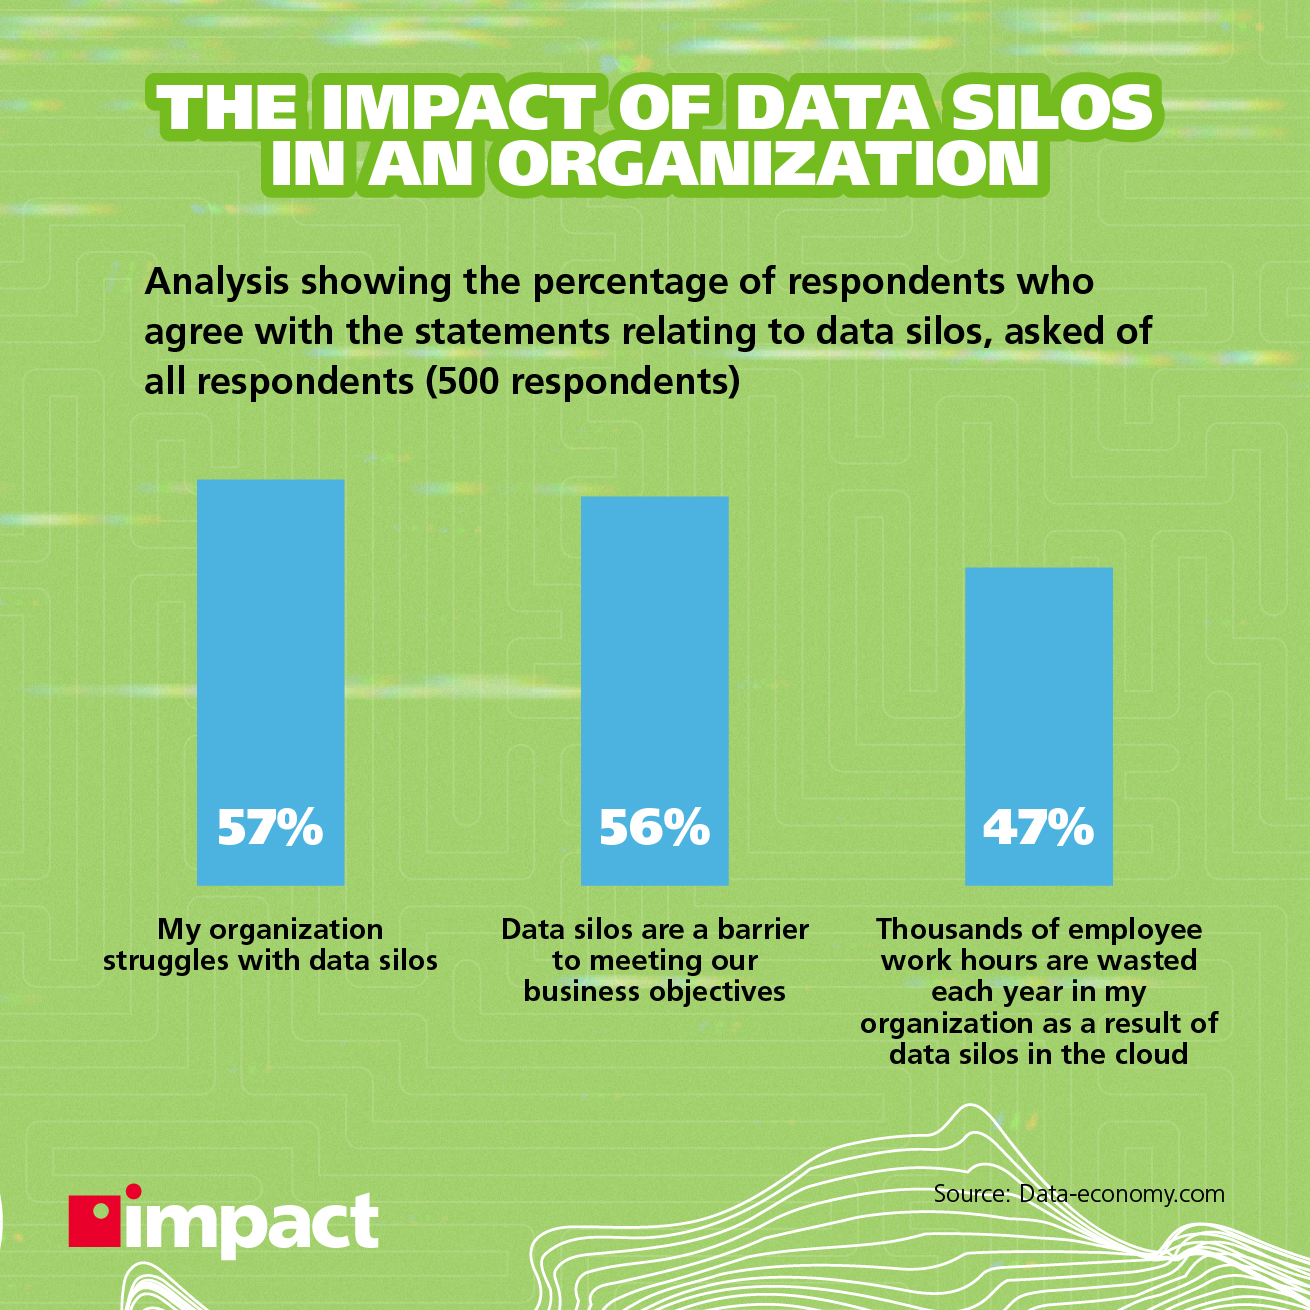 Impact of data silos in an organization